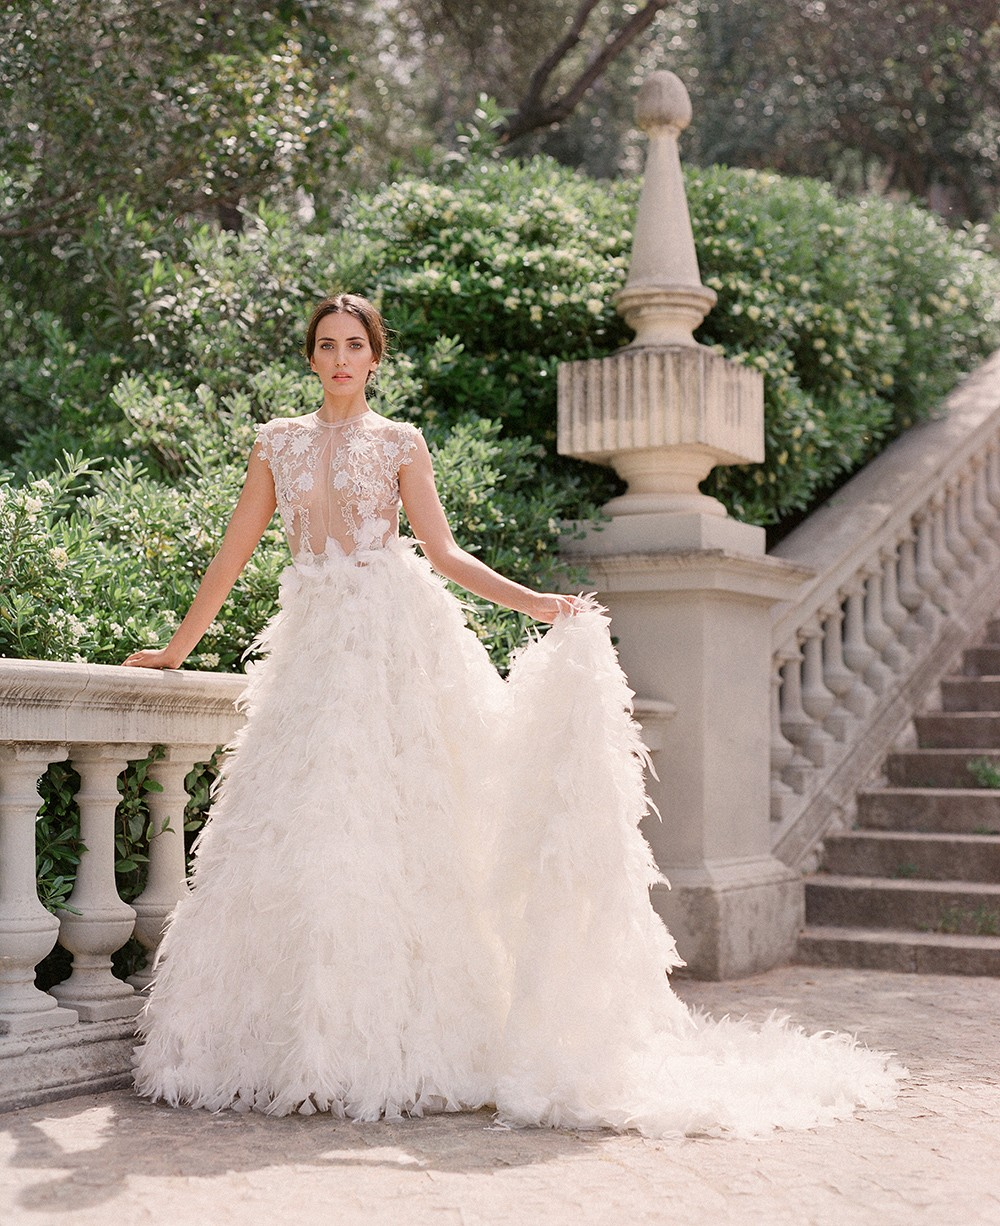 e0a54f2900ee Marco   Maria Bridal Gowns 2019 collection. Τα νυφικά του ισπανικού ...